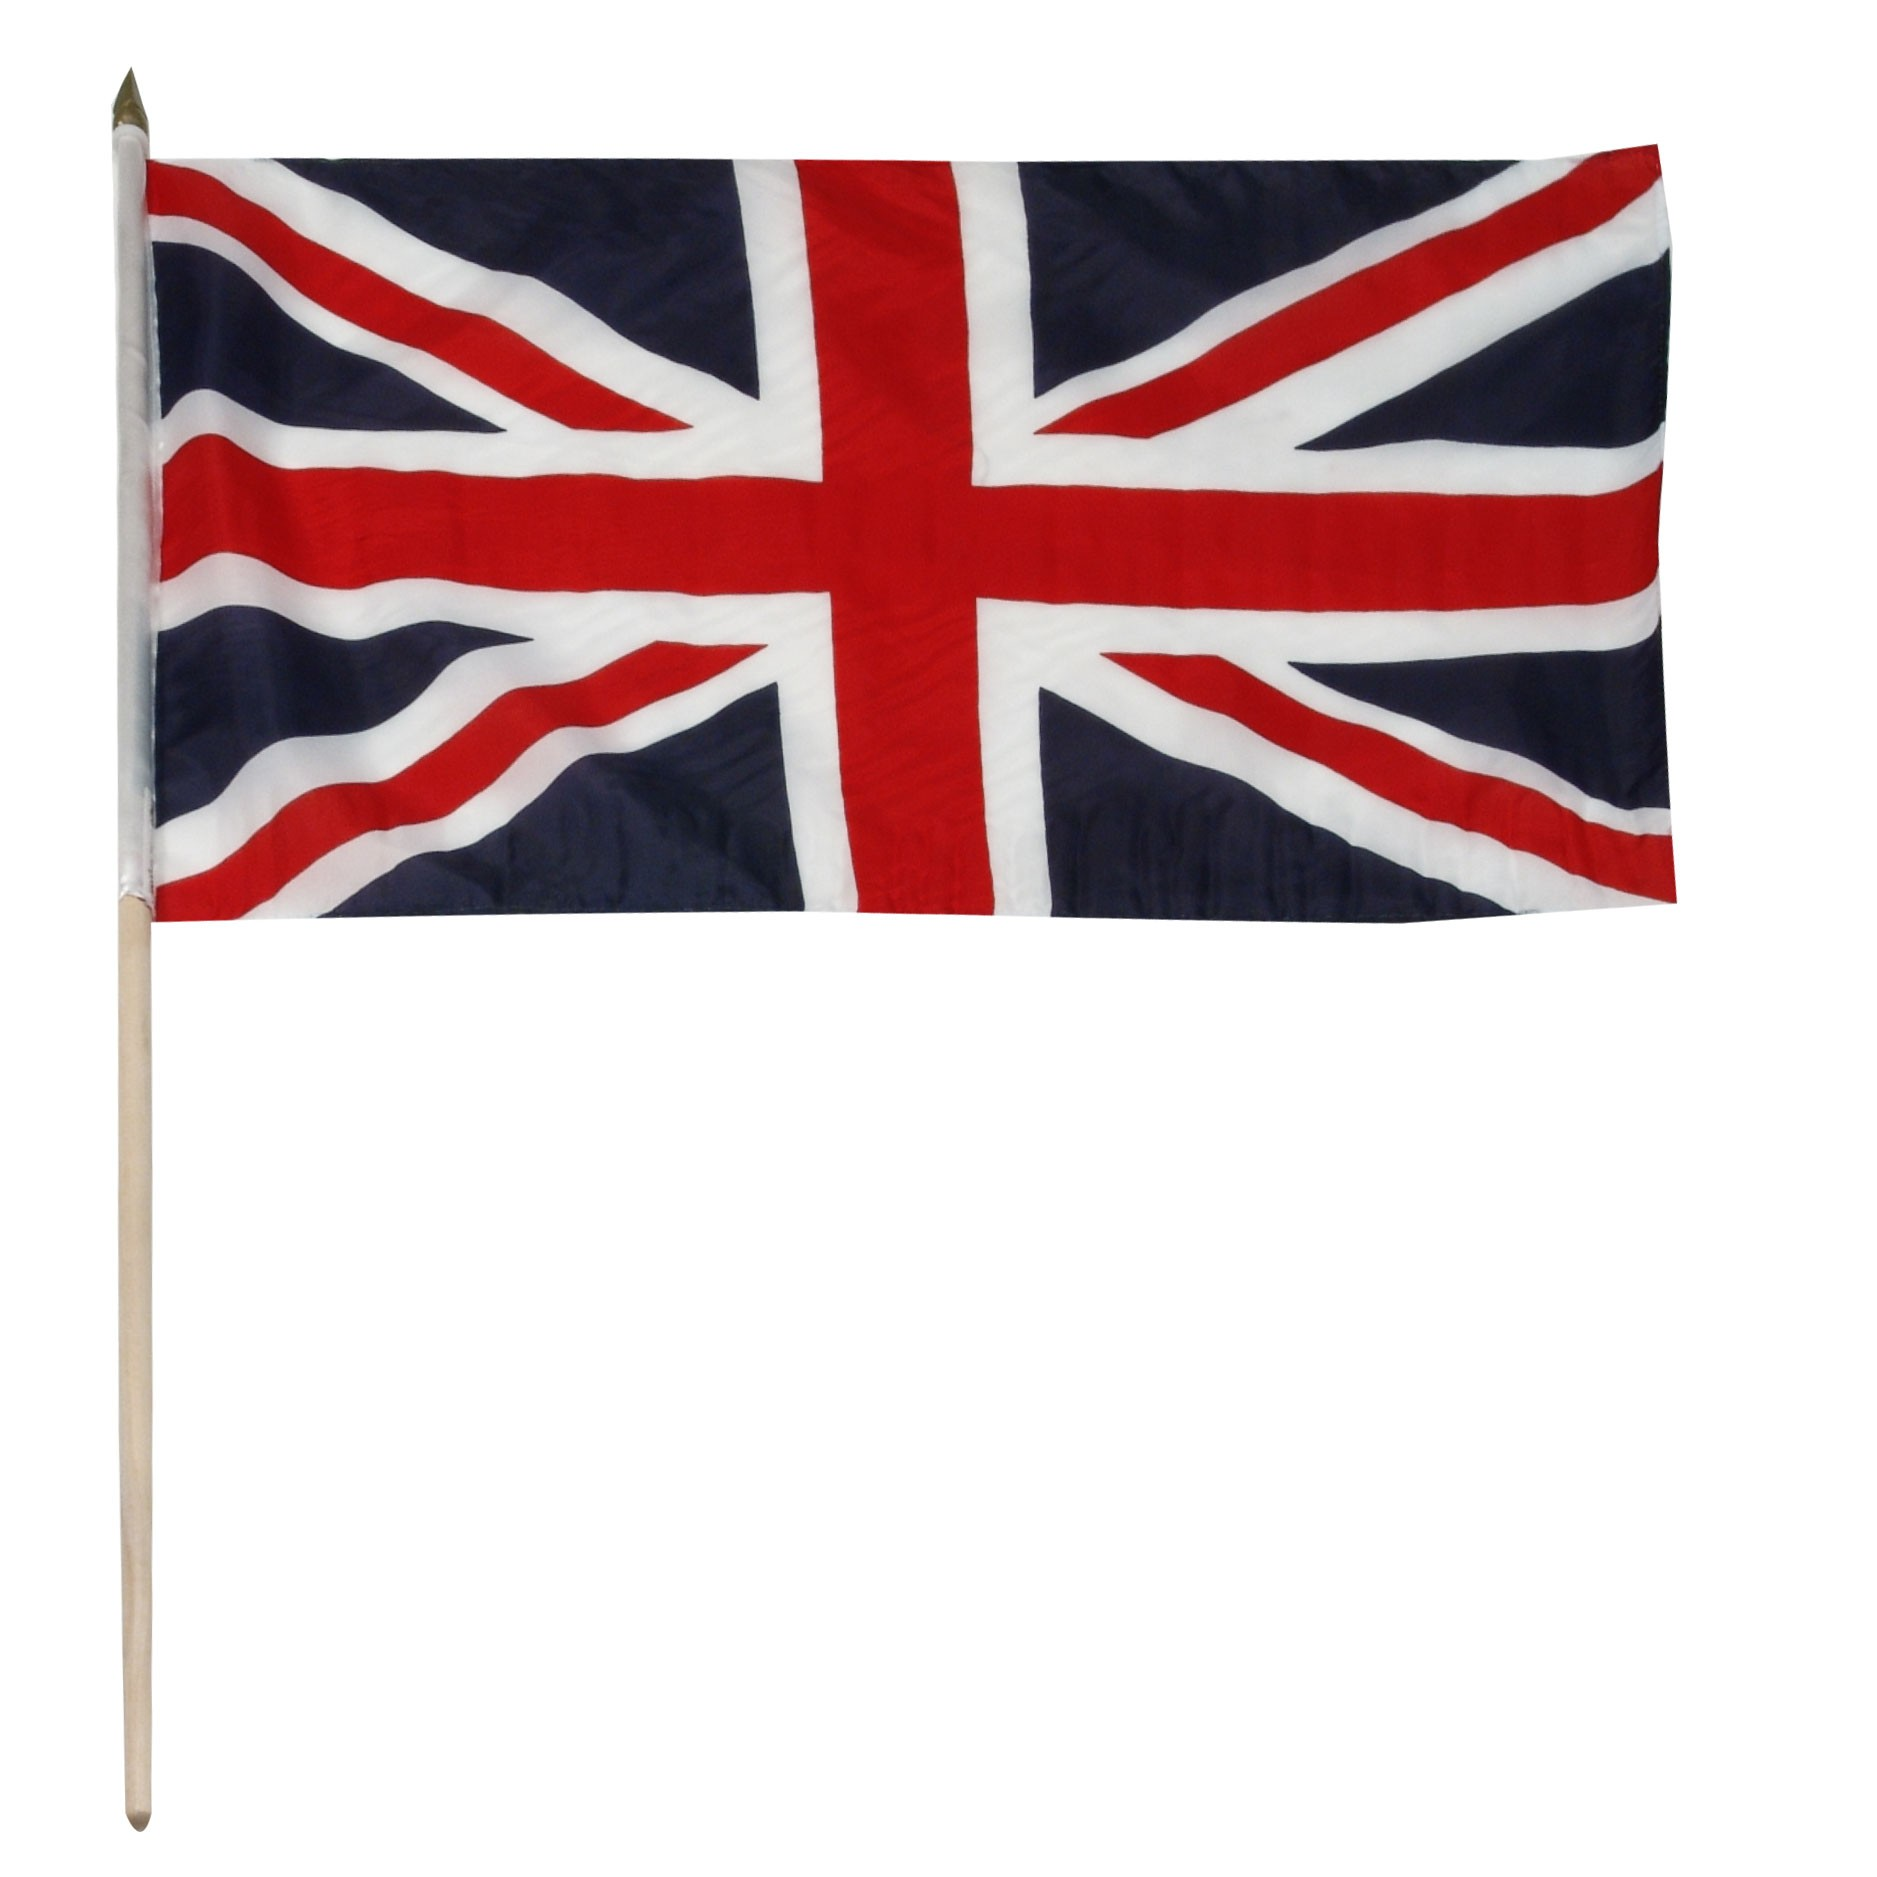 Picture Of British Flag   Clipart Best